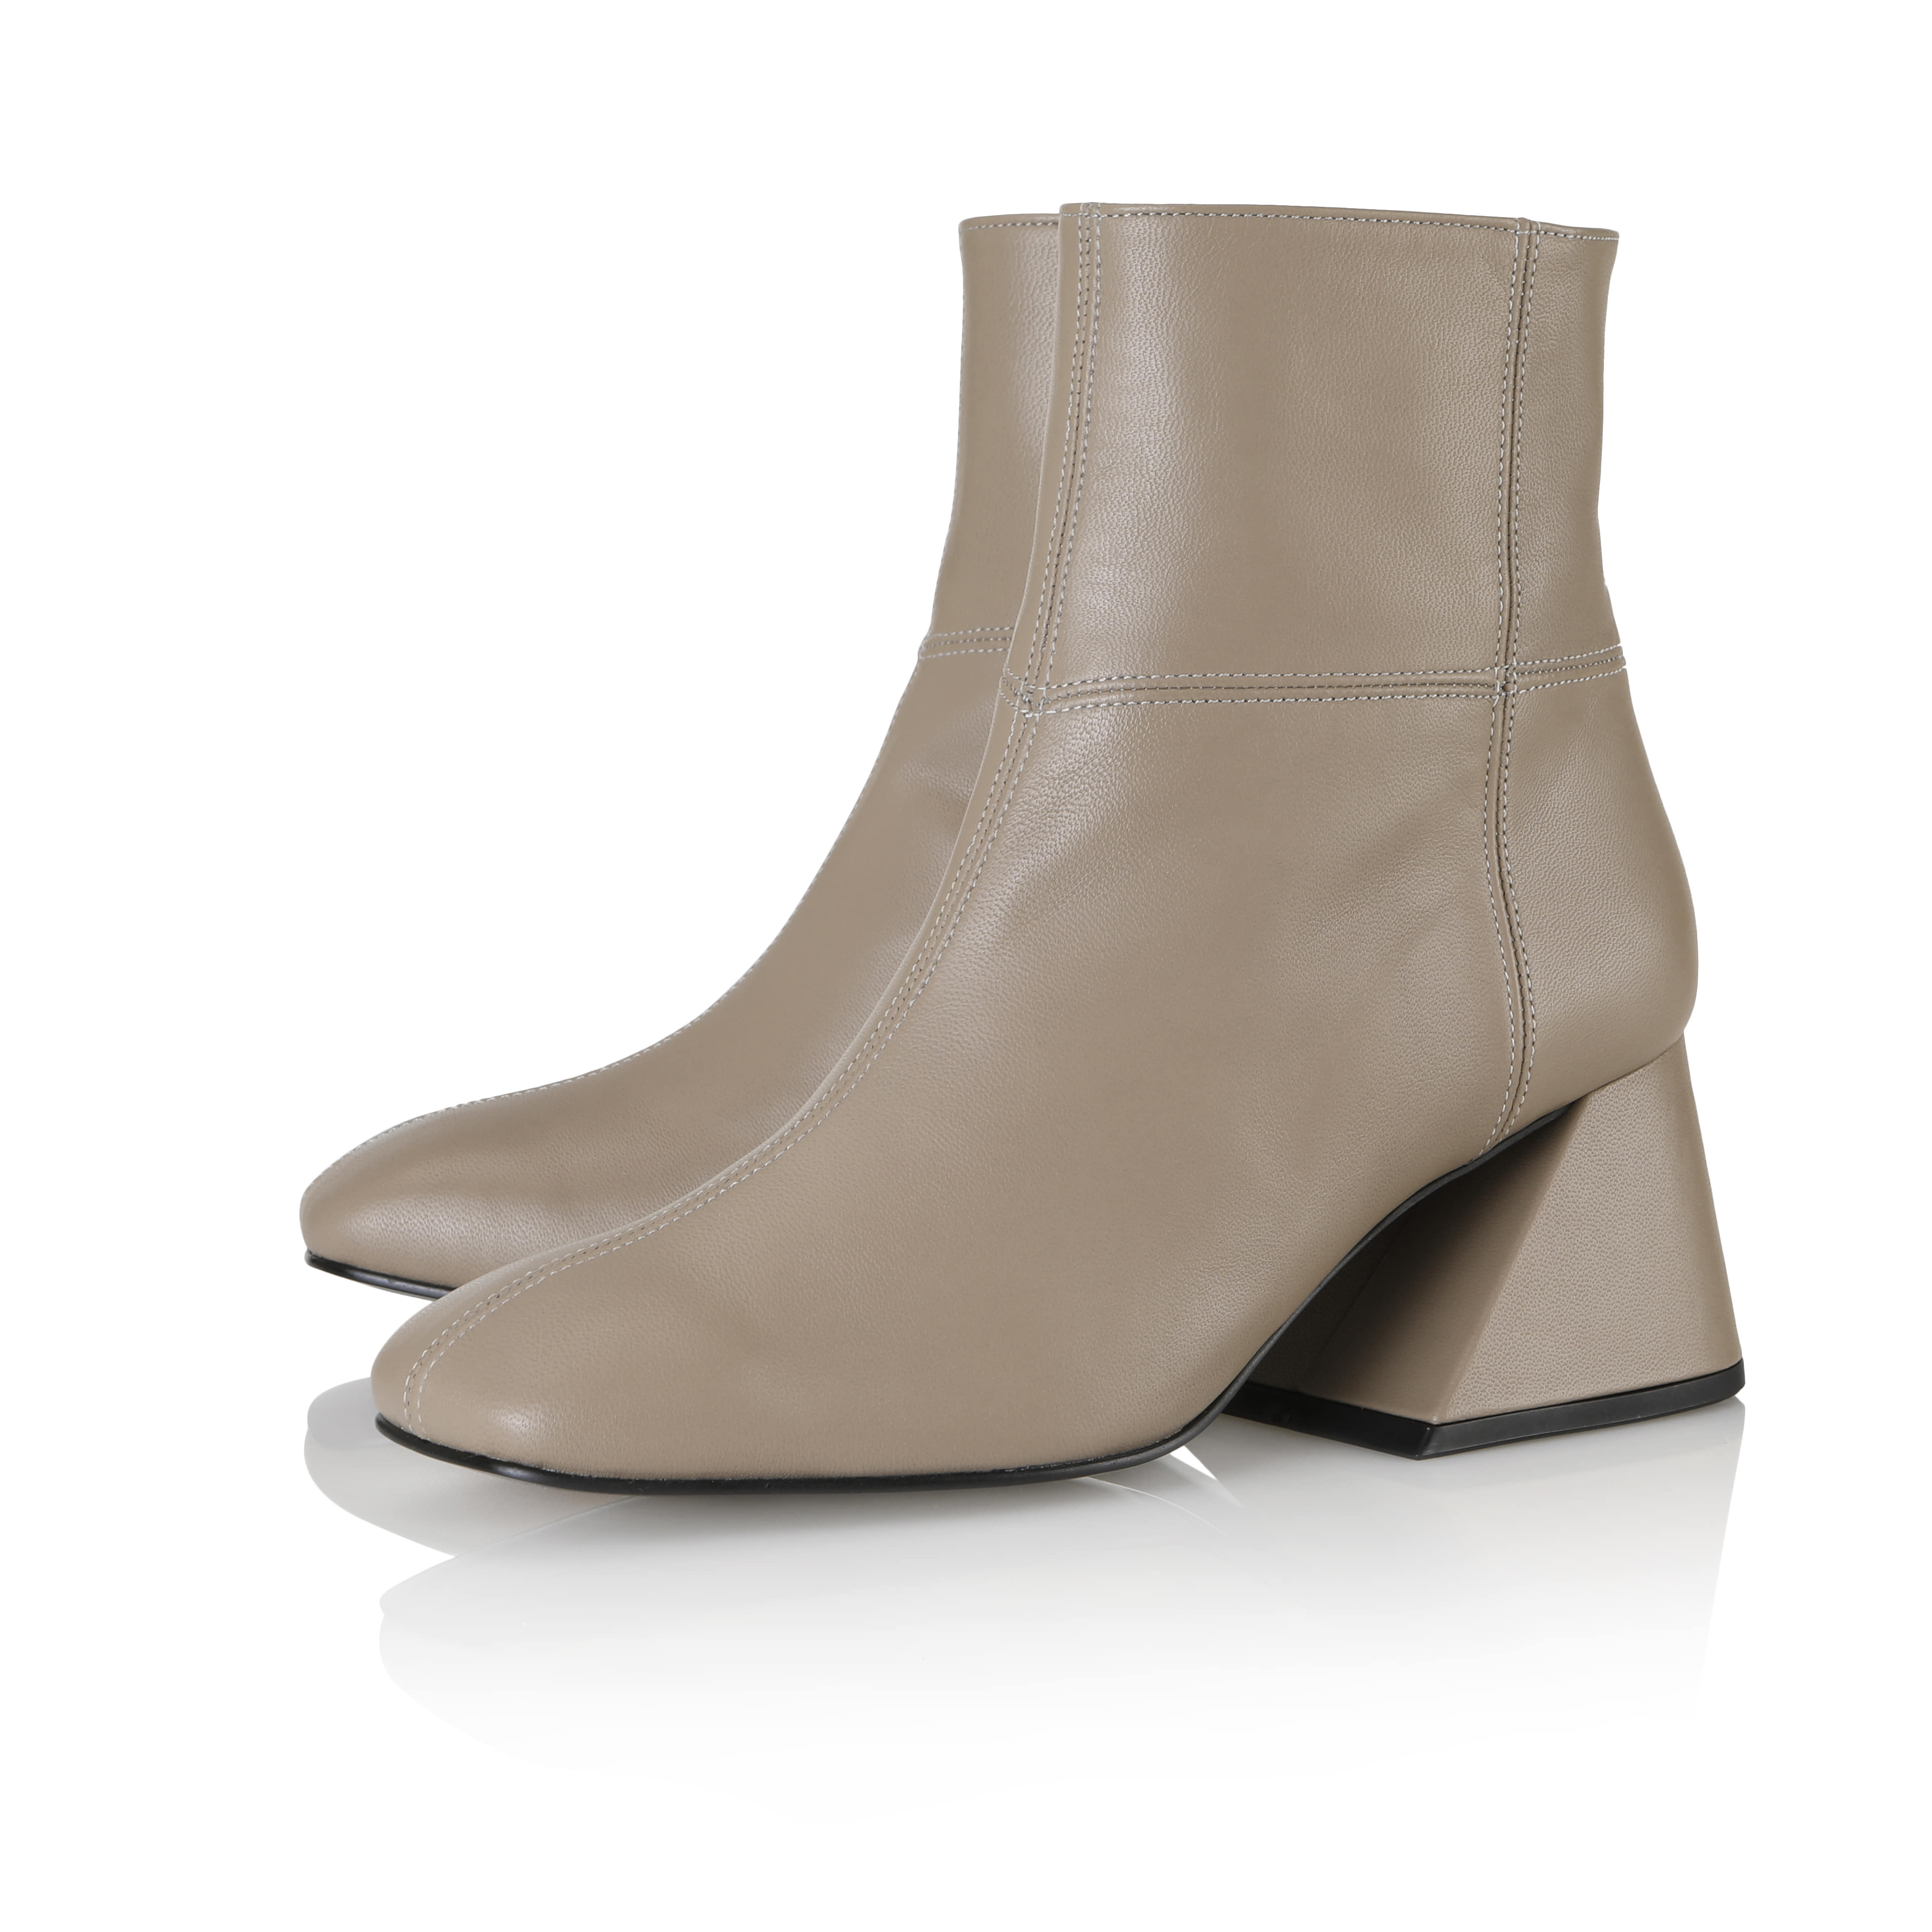 Melody Mondrian Boots / YY9A-B10 / TAUPE